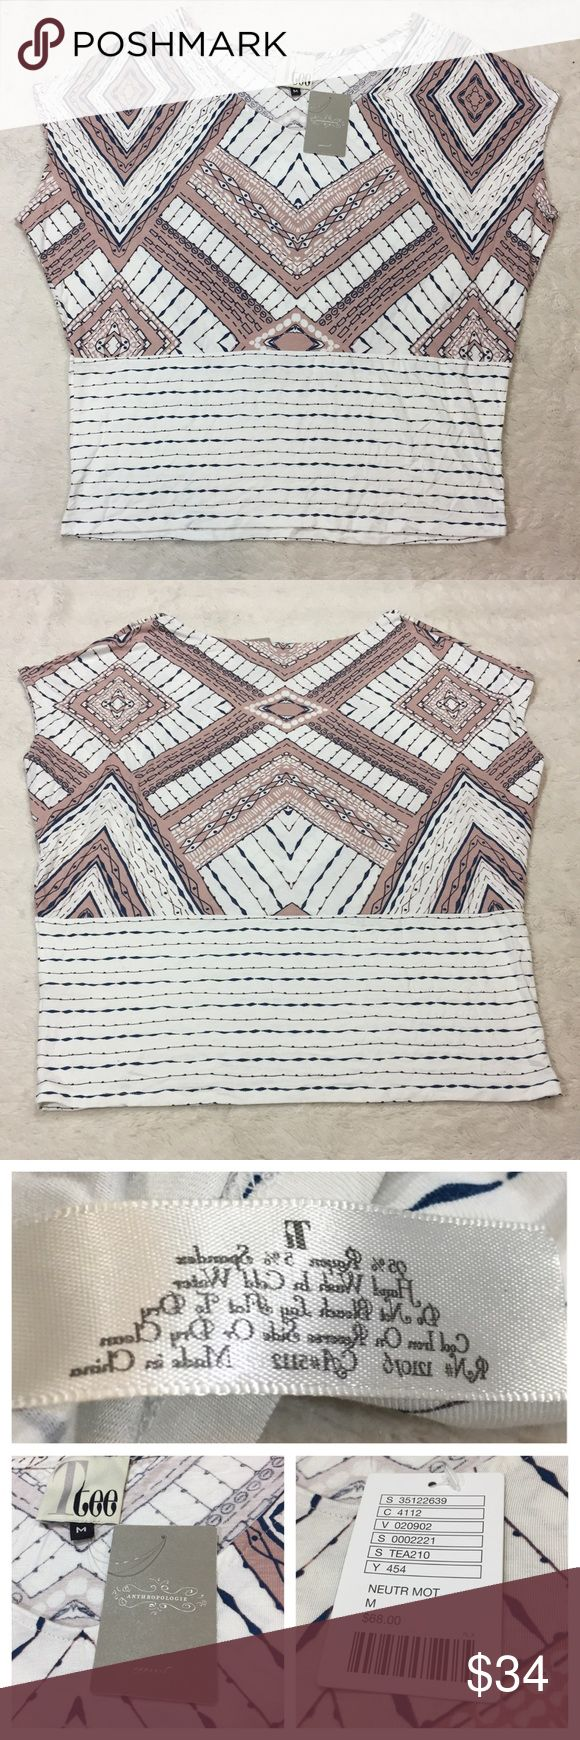 NWT Anthropologie Ttee Aztec Blouse New and Flawless Anthropologie Ttee Size M Soft Blouse Anthropologie Tops Blouses